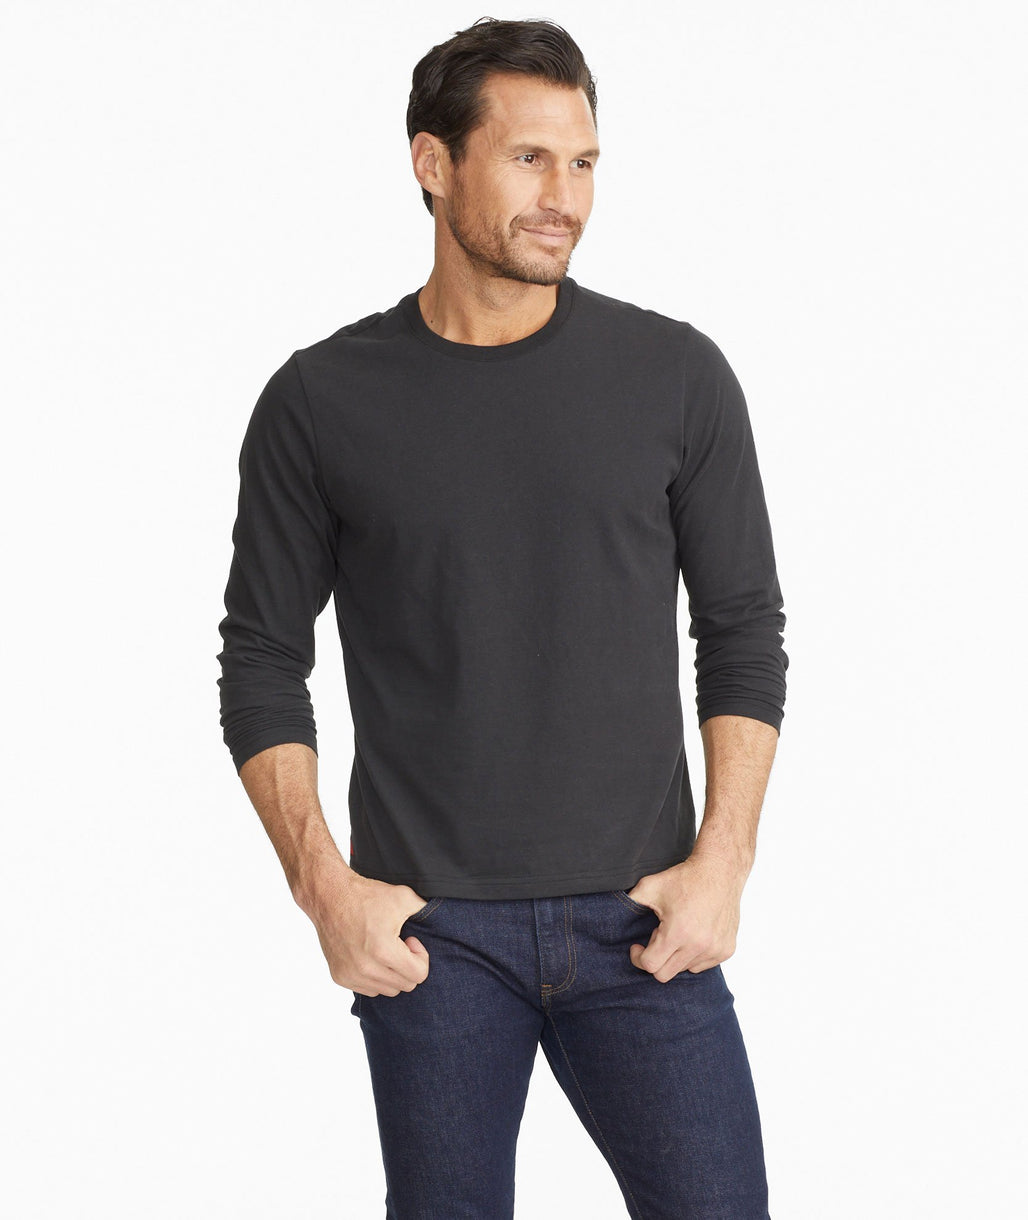 Model wearing a Black Ultrasoft Long-Sleeve Tee